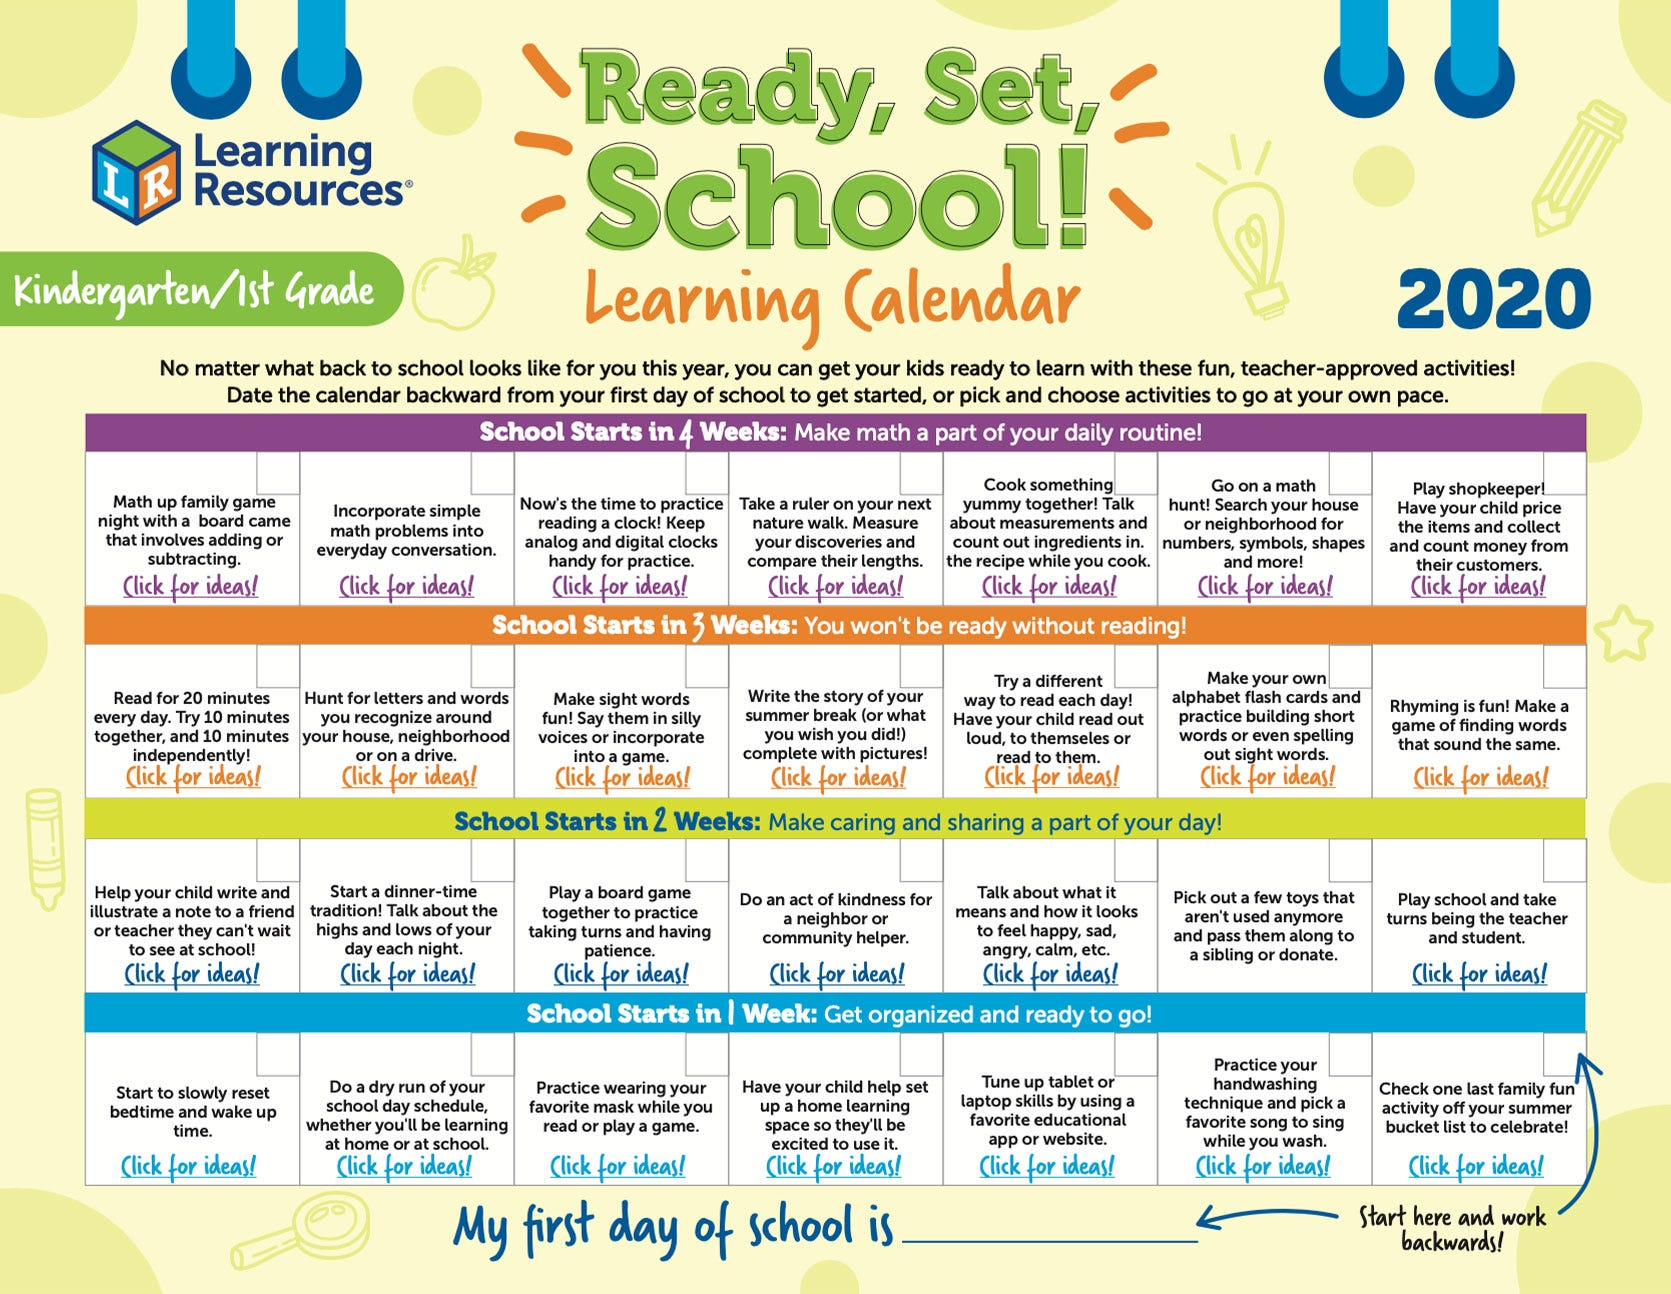 Ready, Set, School Kindergarten/1st Grade Learning Calendar